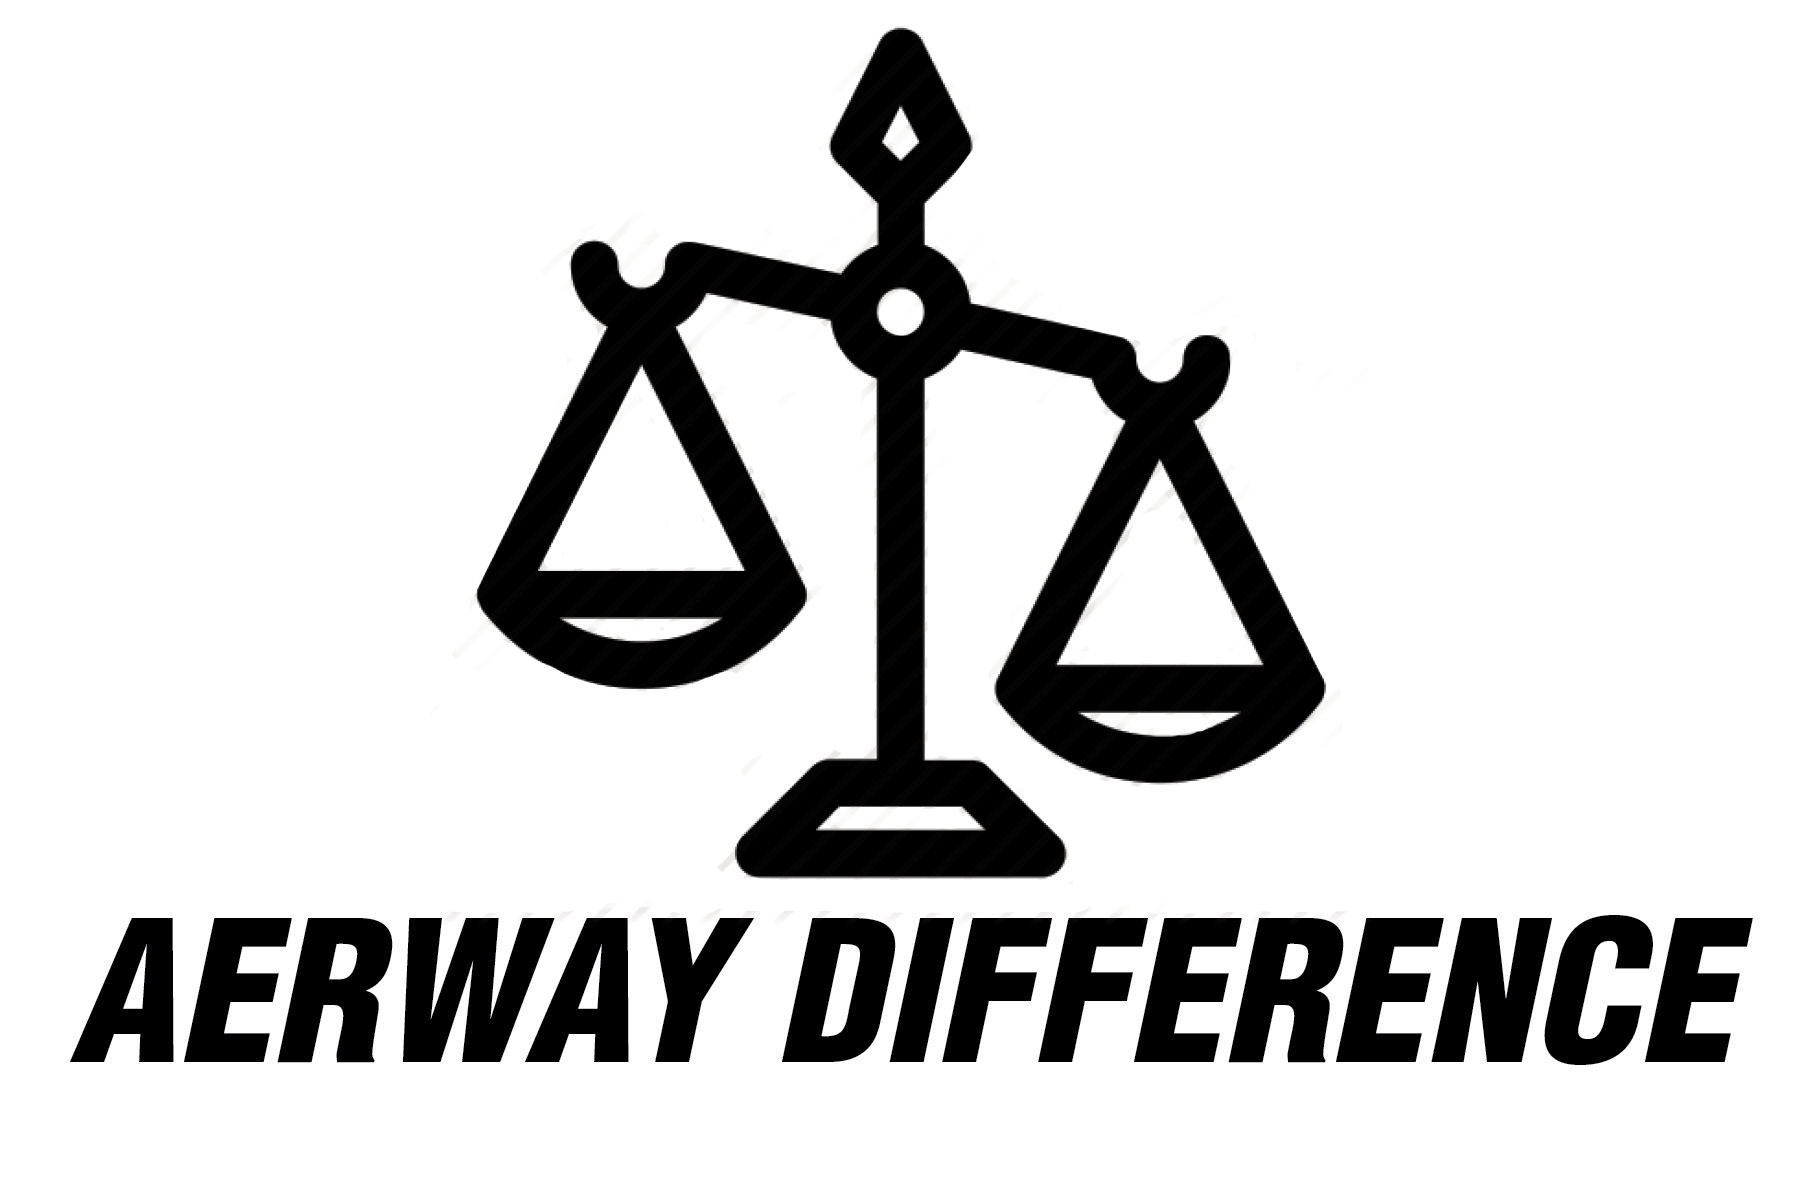 AerWay Difference